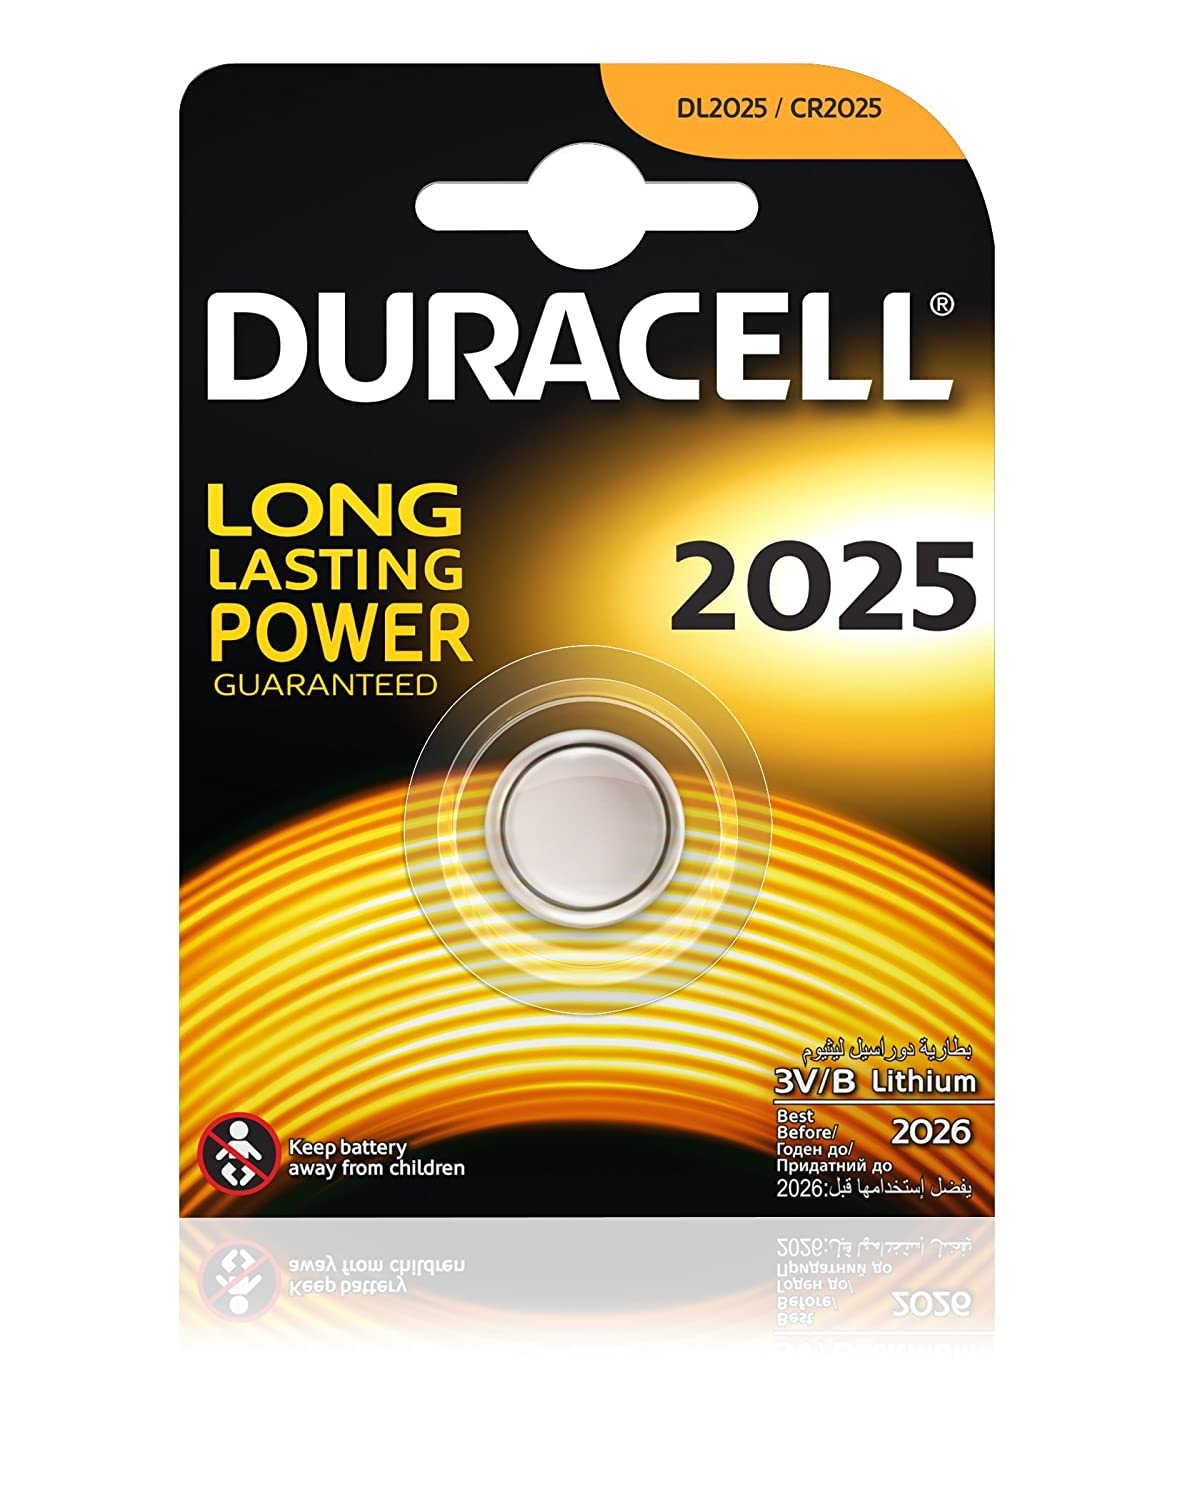 Duracell Specialty Type 2025 Lithium Coin Camera Battery, pack of 1